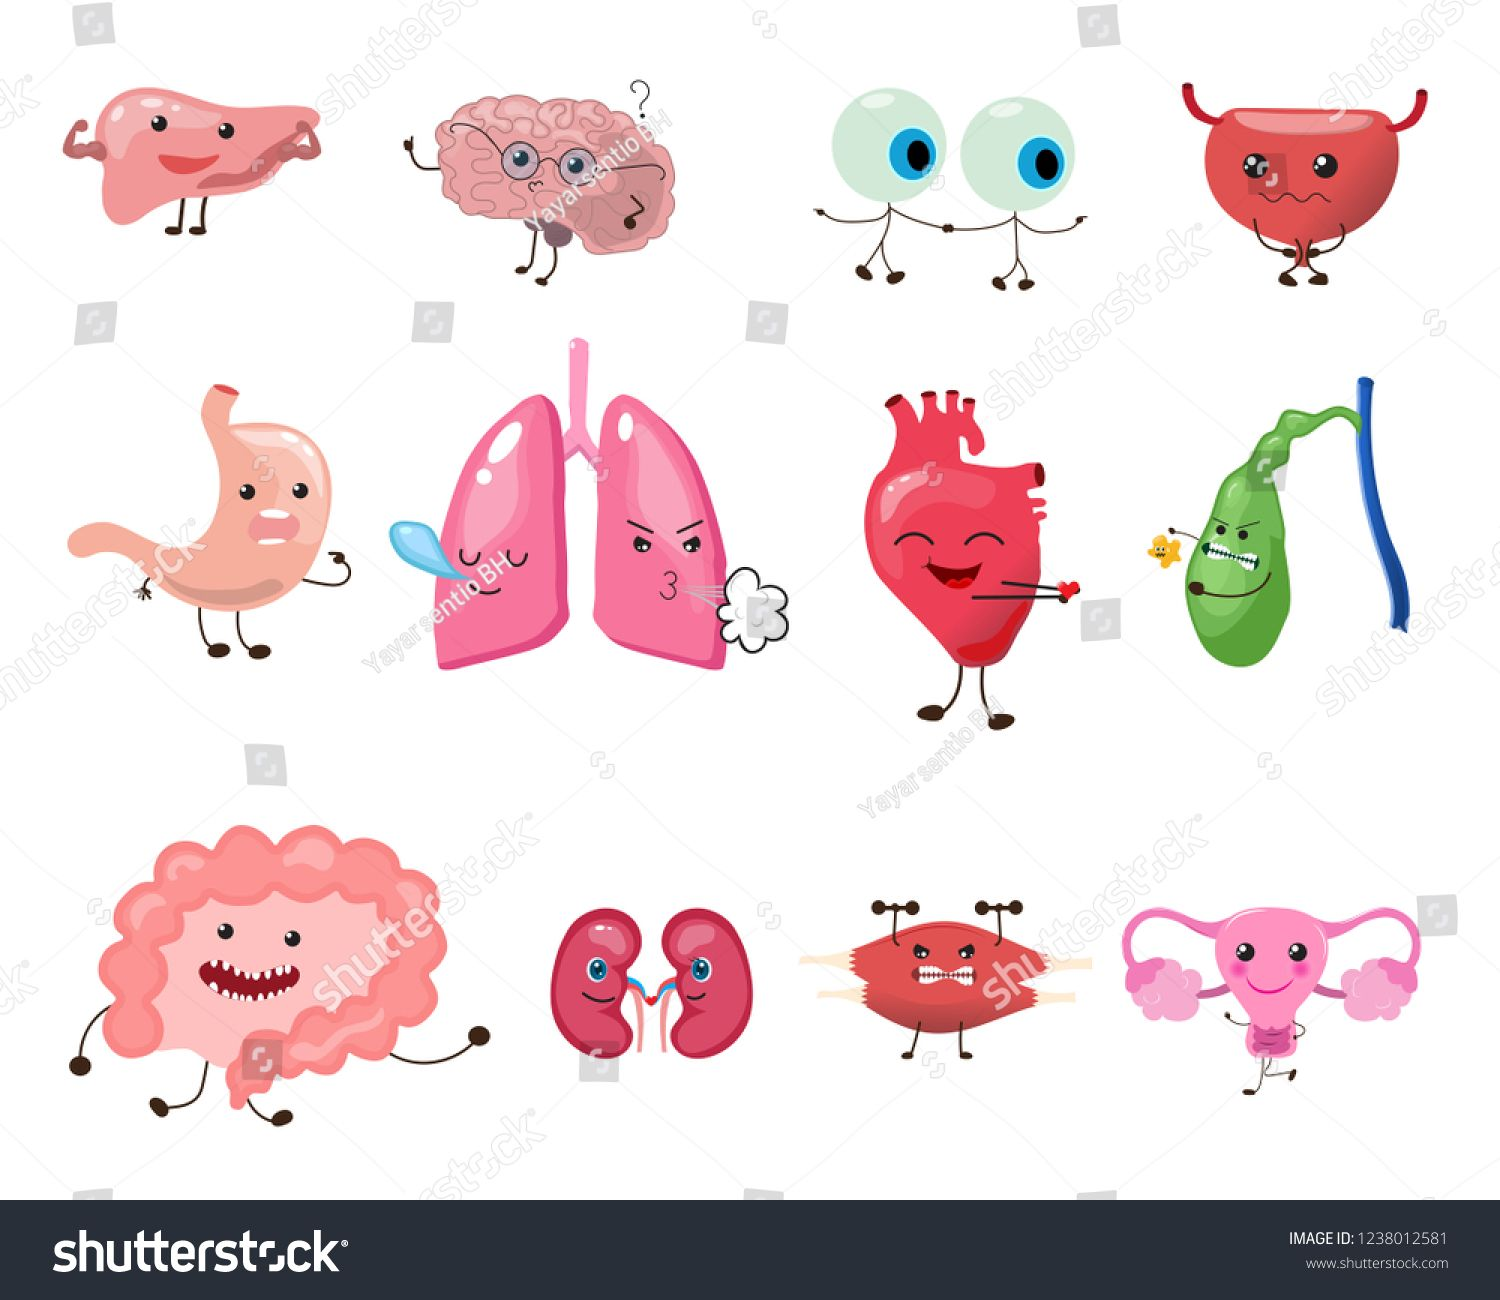 Image Heart And Lungs Clipart - Your Heart - Free Transparent PNG Download  - PNGkey